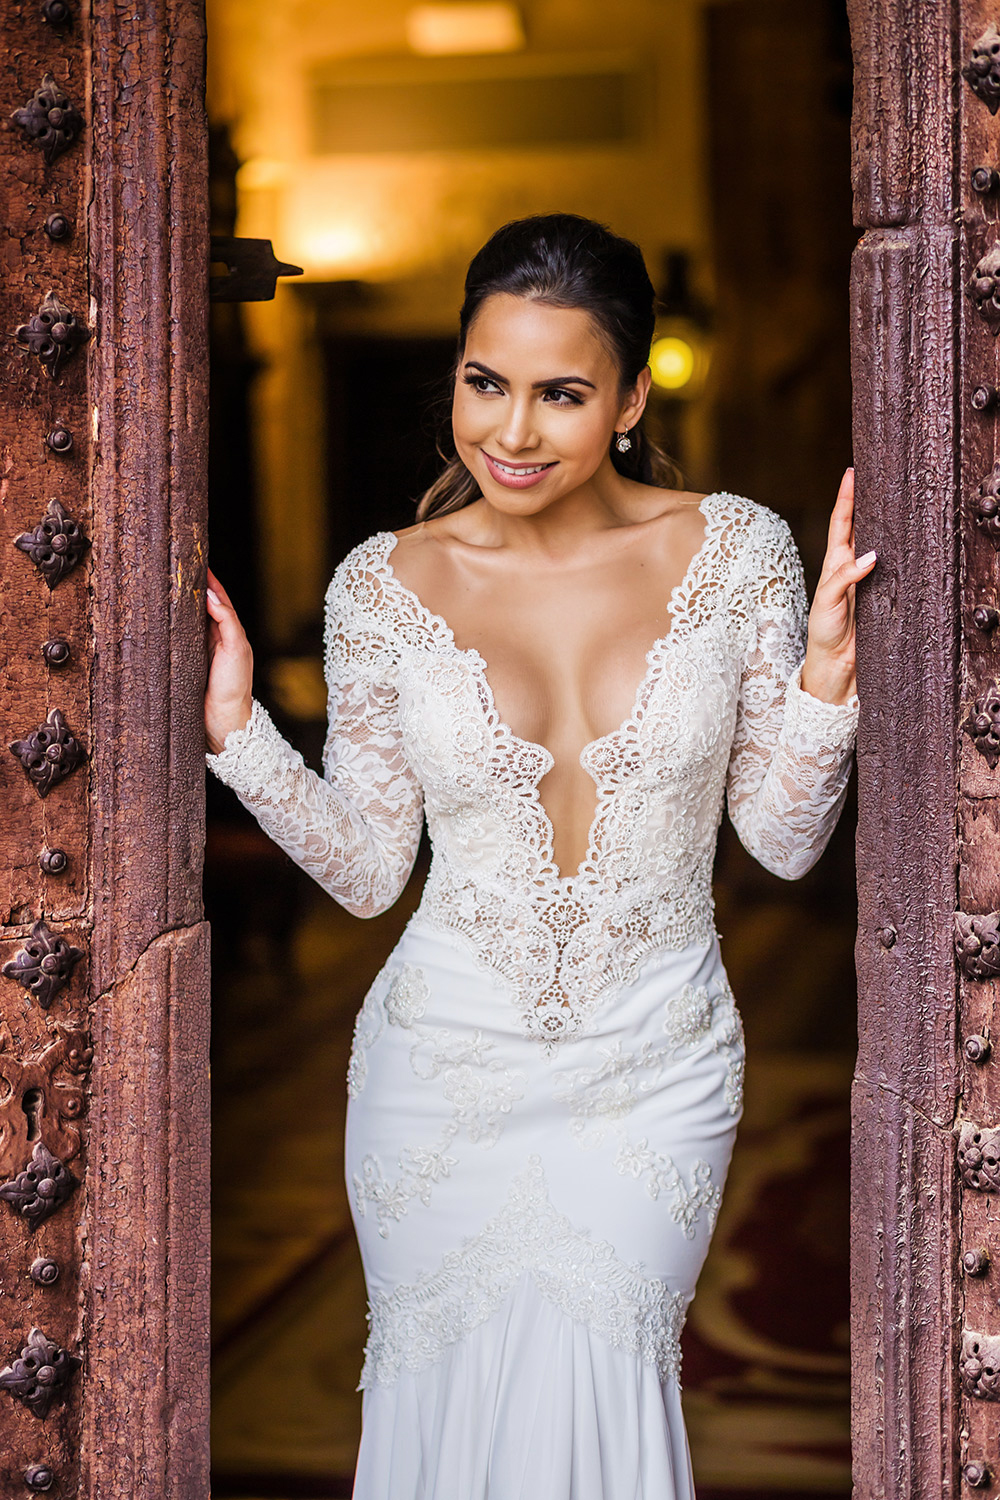 lisa morales - barcelona destination wedding